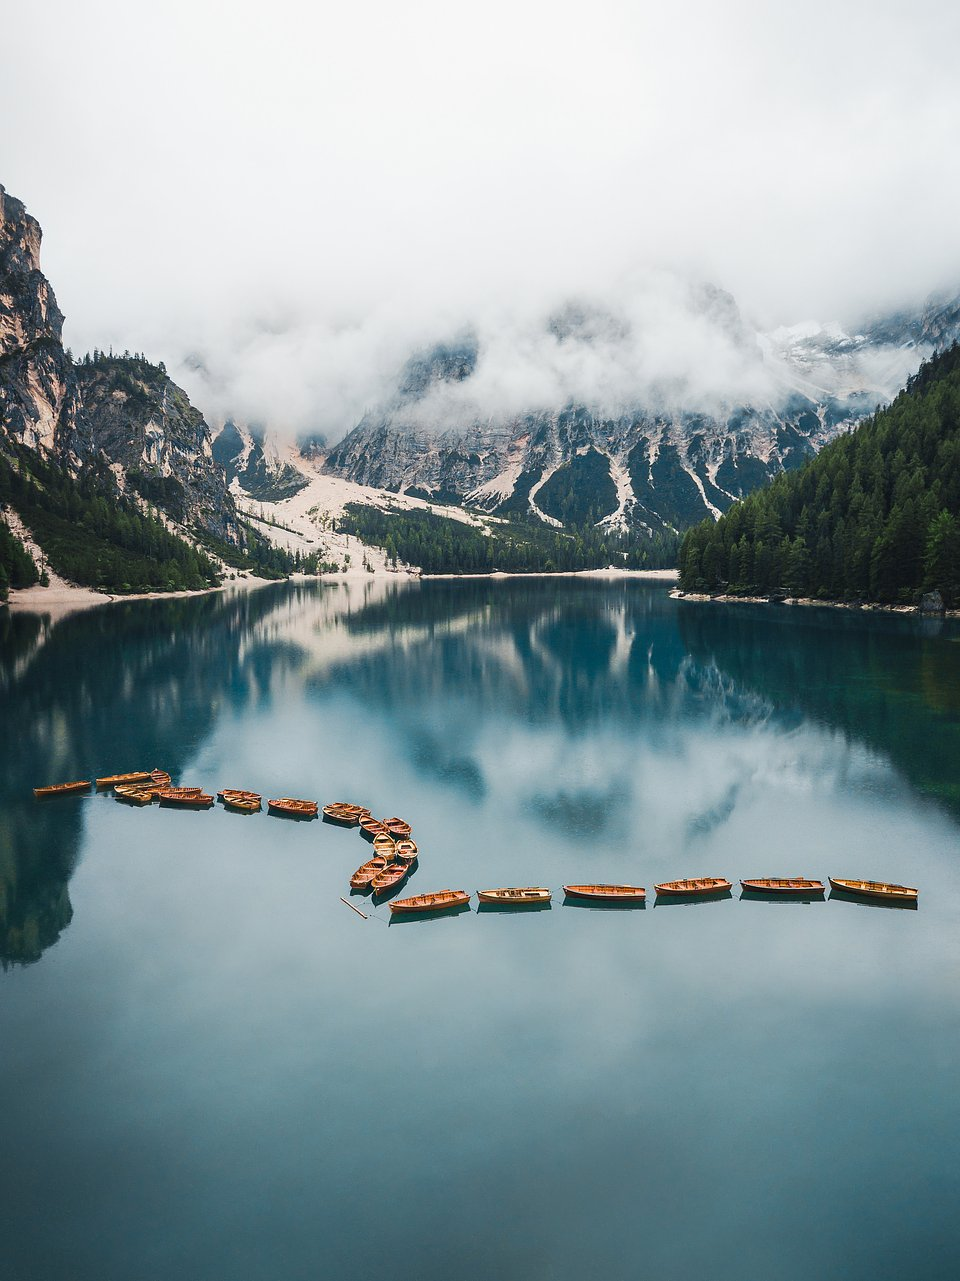 Location: Lago Di Braies, Italy